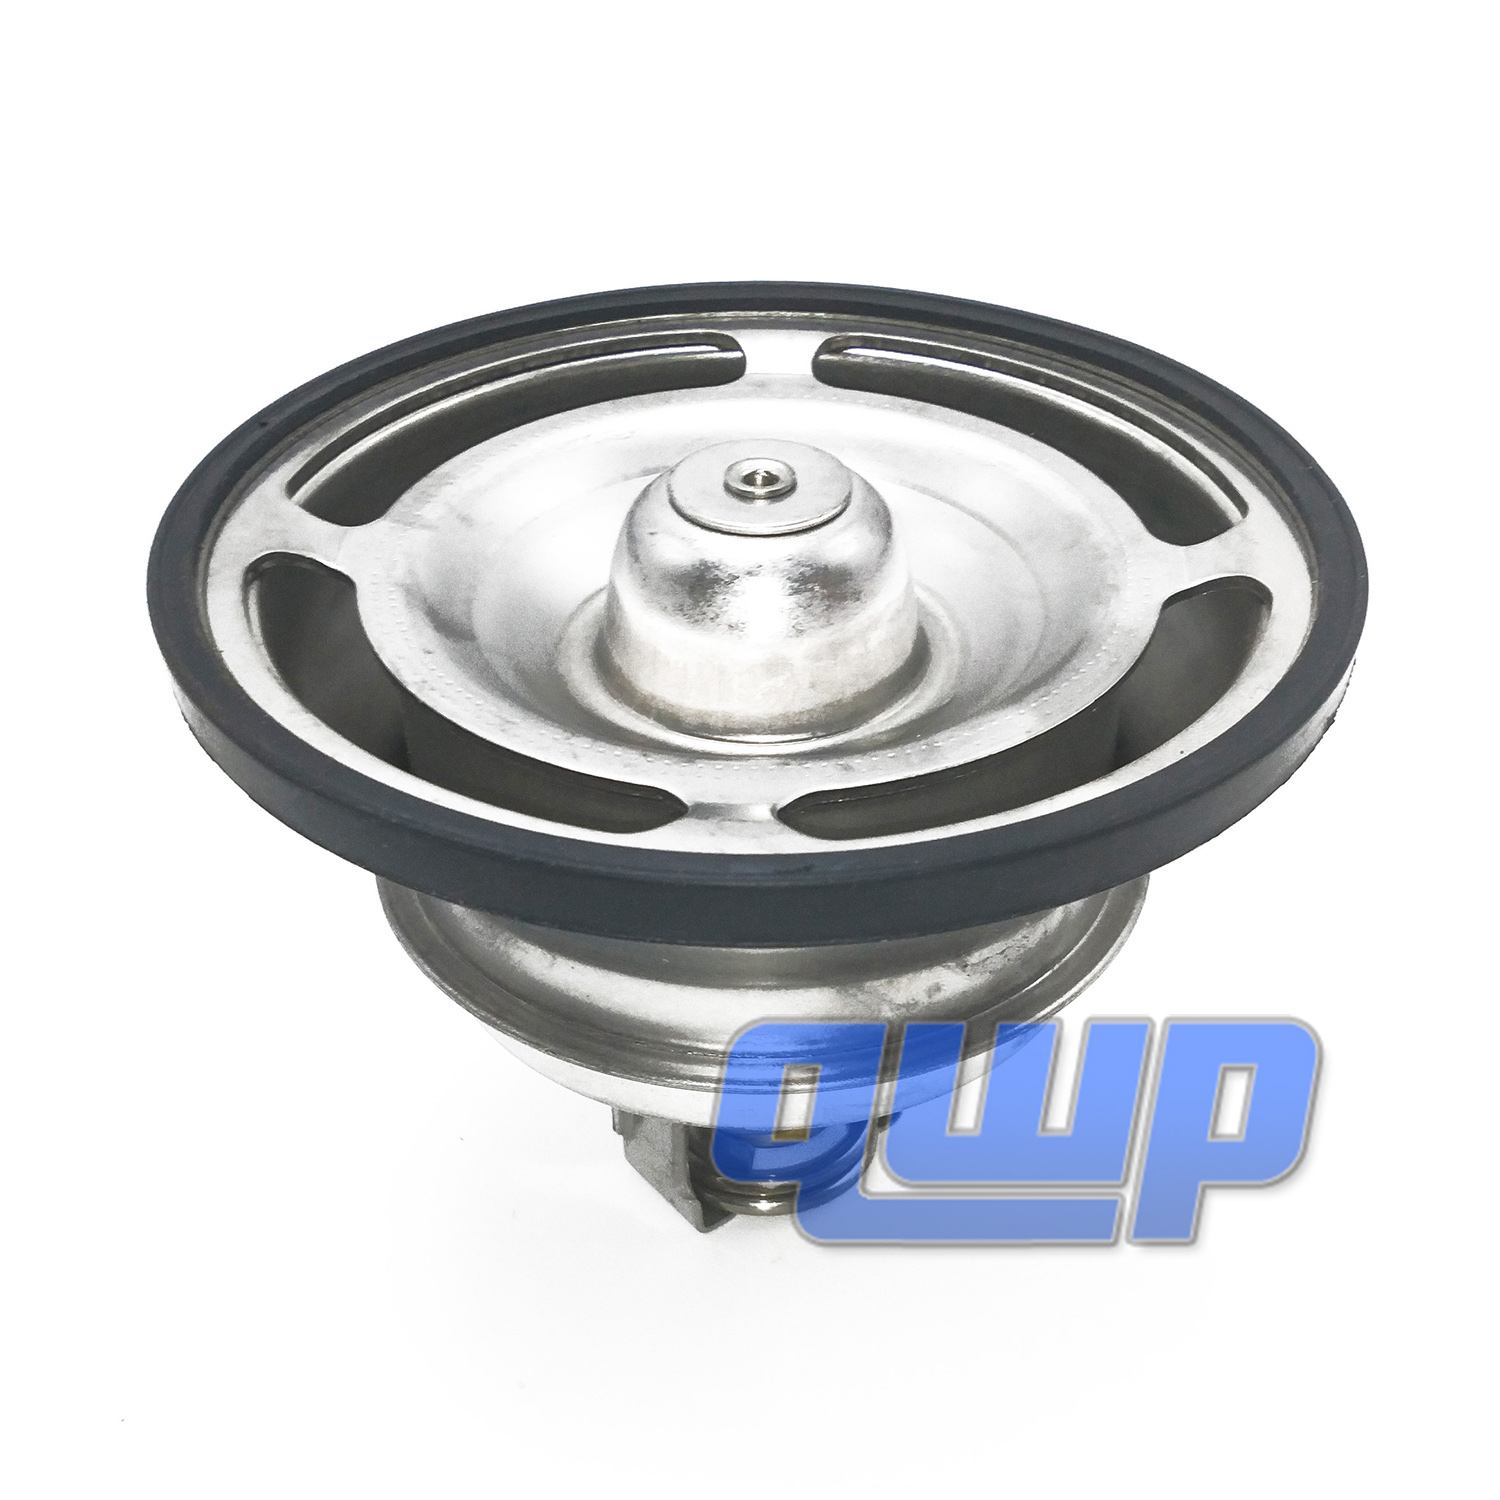 Details about New Thermostat For D13 D12 Mack MP8 MP7 Volvo Engine 21237213  21412639 21412649